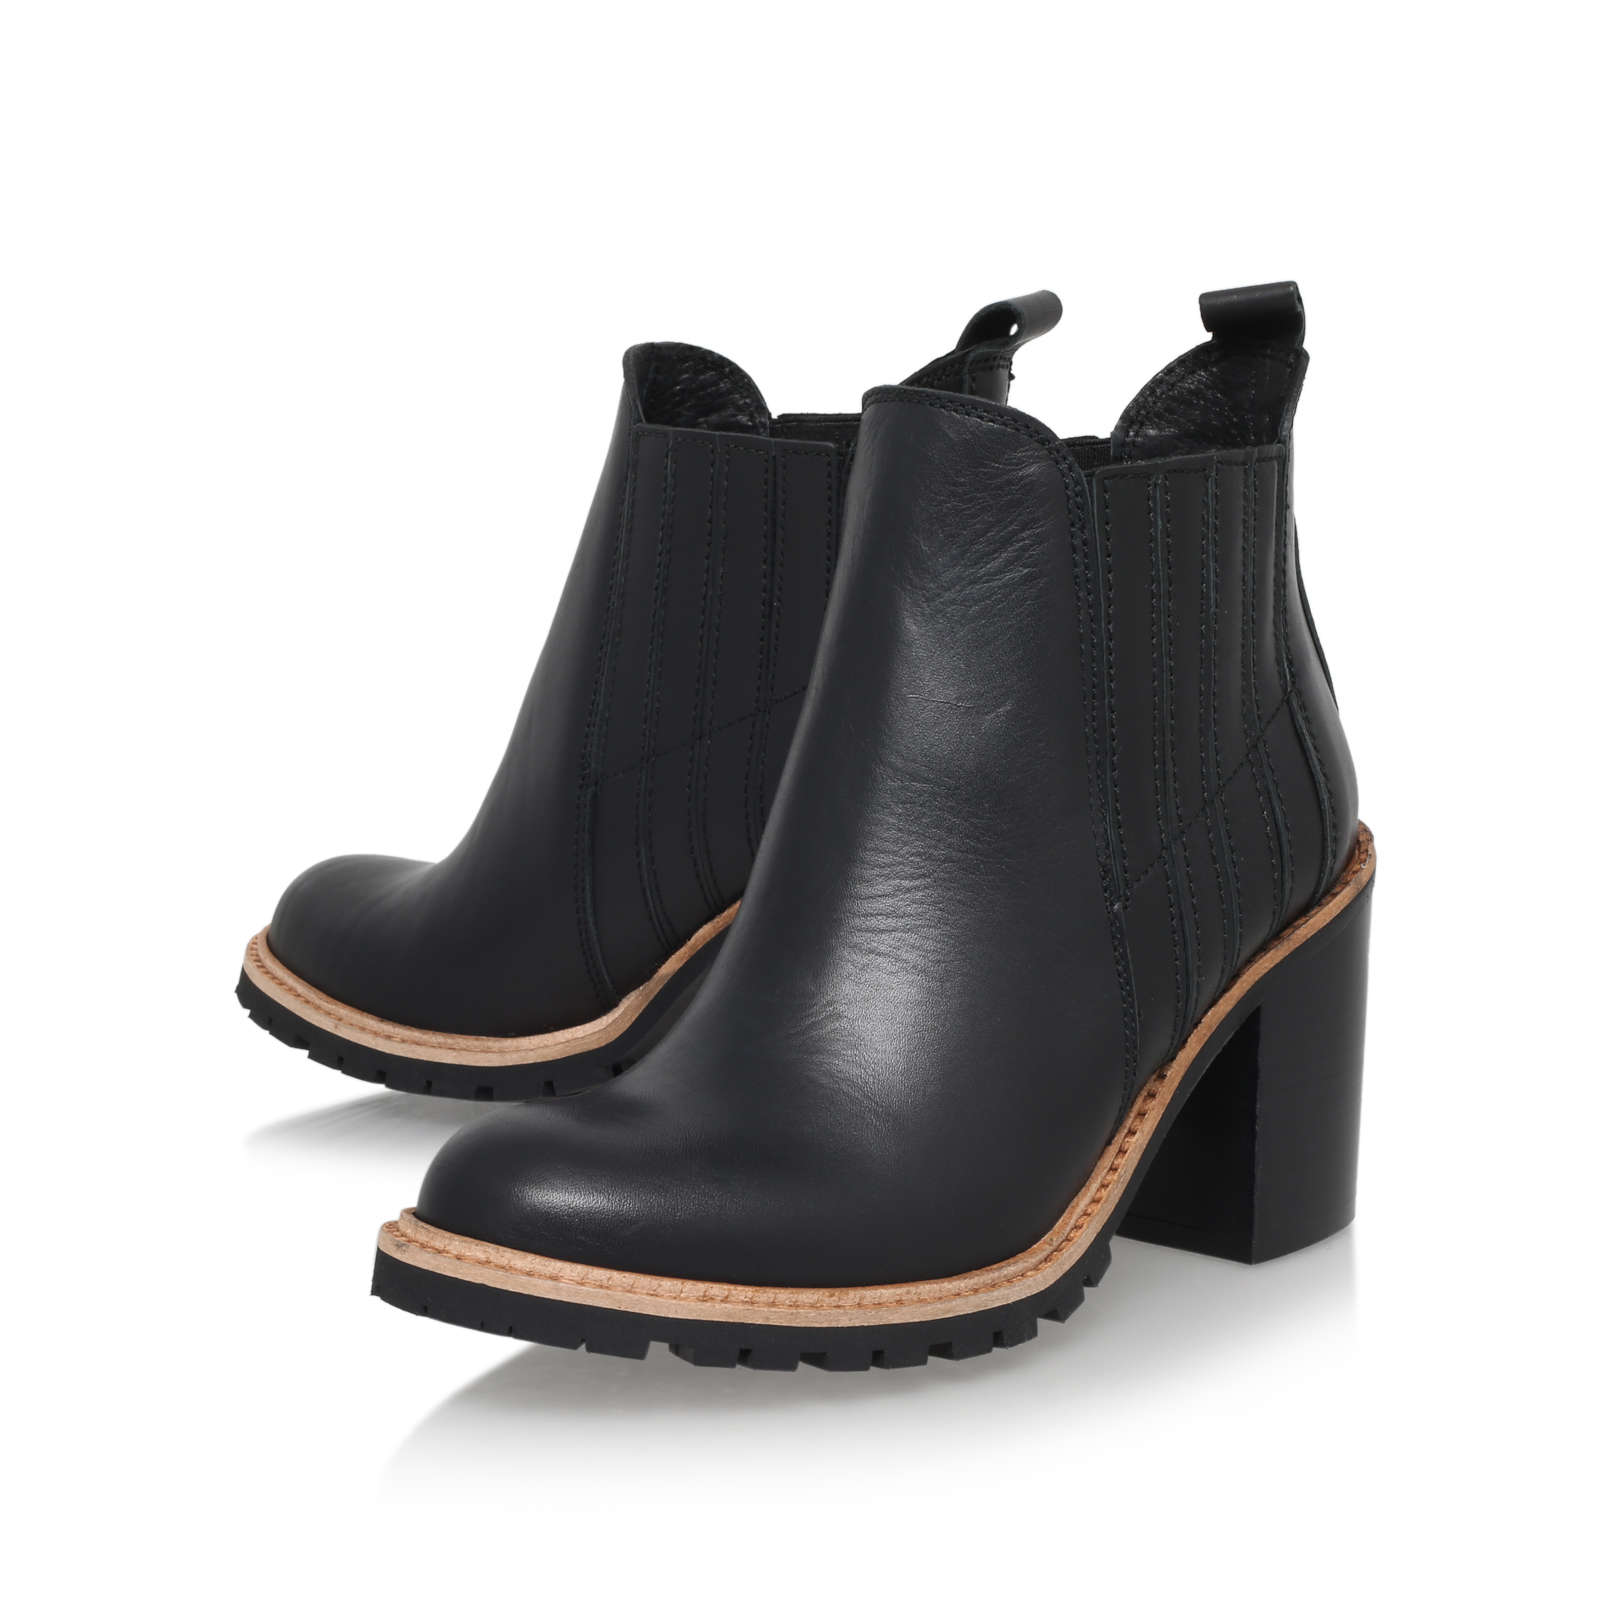 SALOON Kurt Geiger Saloon Black Leather Mid Heel Ankle Boots by KG ...